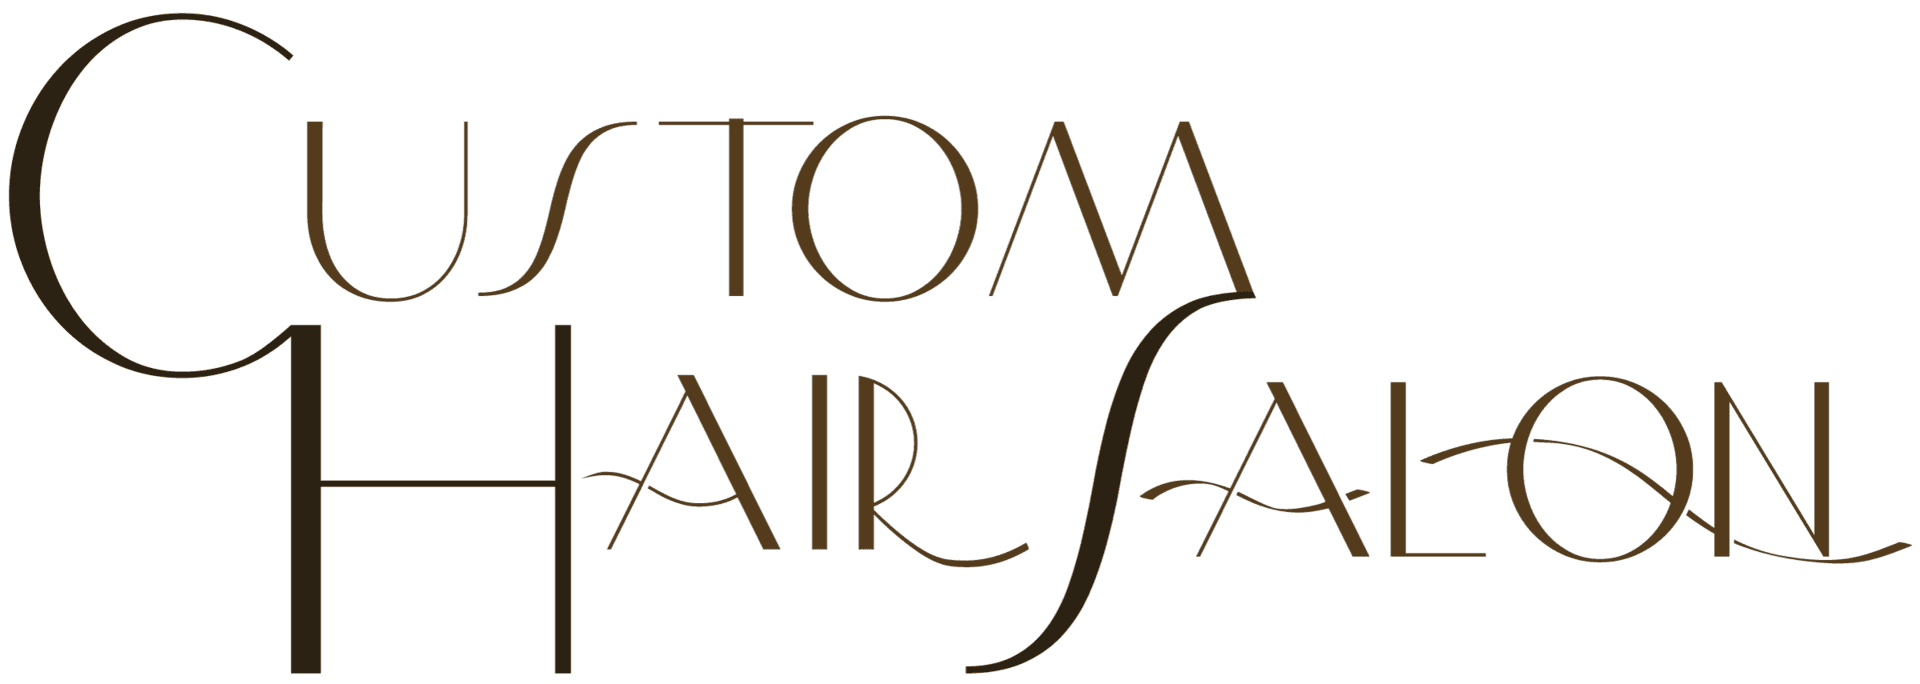 Custom Hair Salon logo